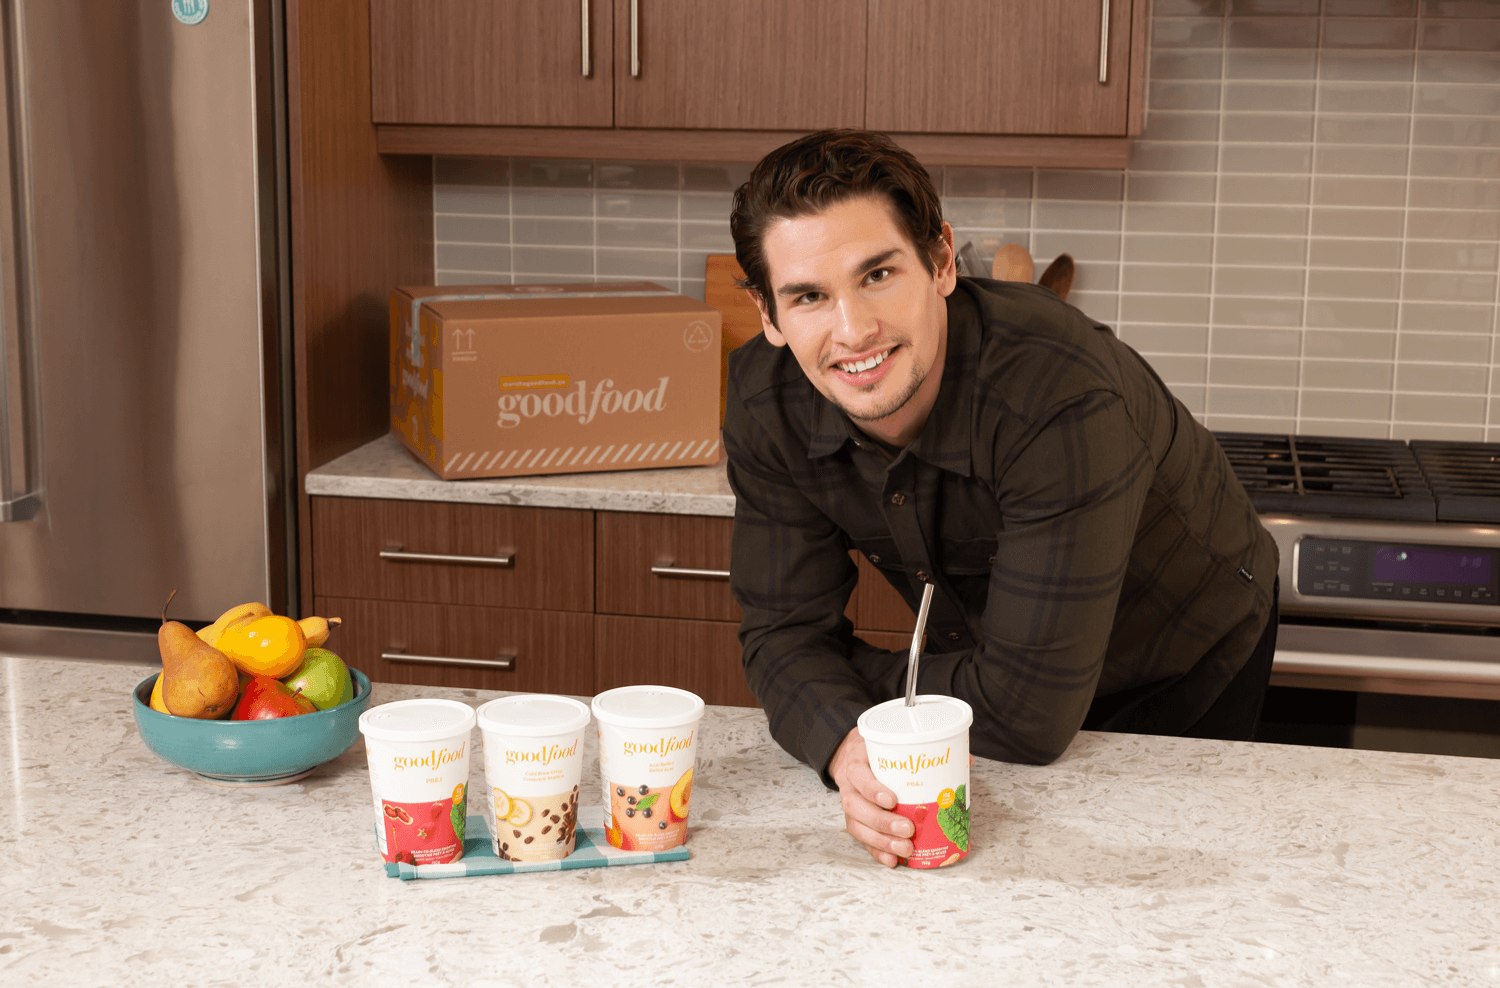 Sean Monahan in his kitchen with Goodfood smoothies